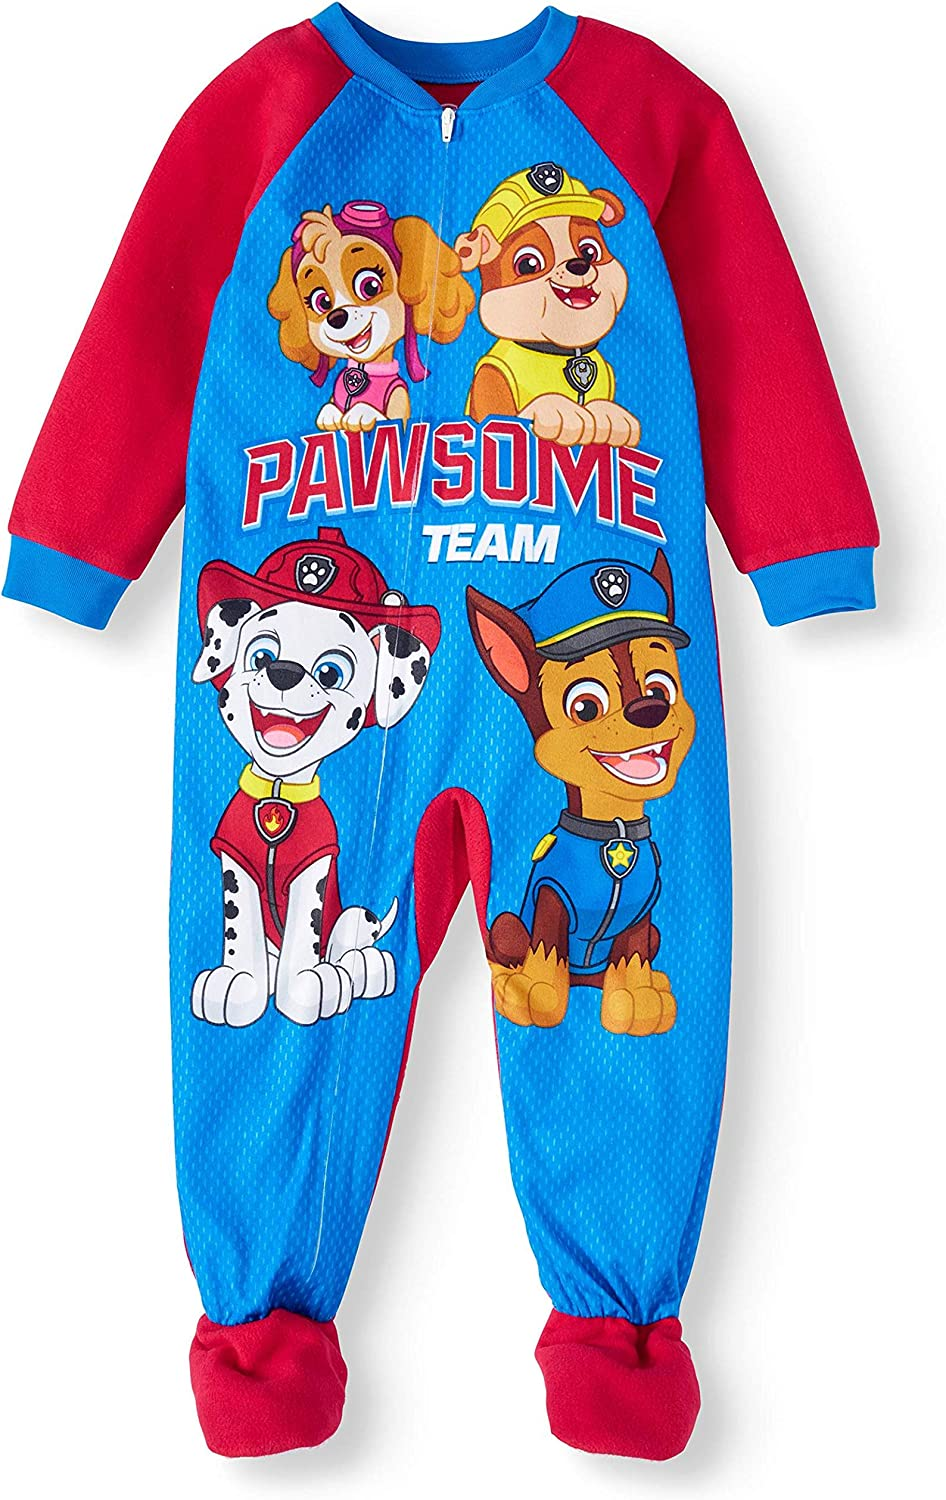 Boys Paw Patrol Chase Onesie Pyjamas All in One Fleece with Hood